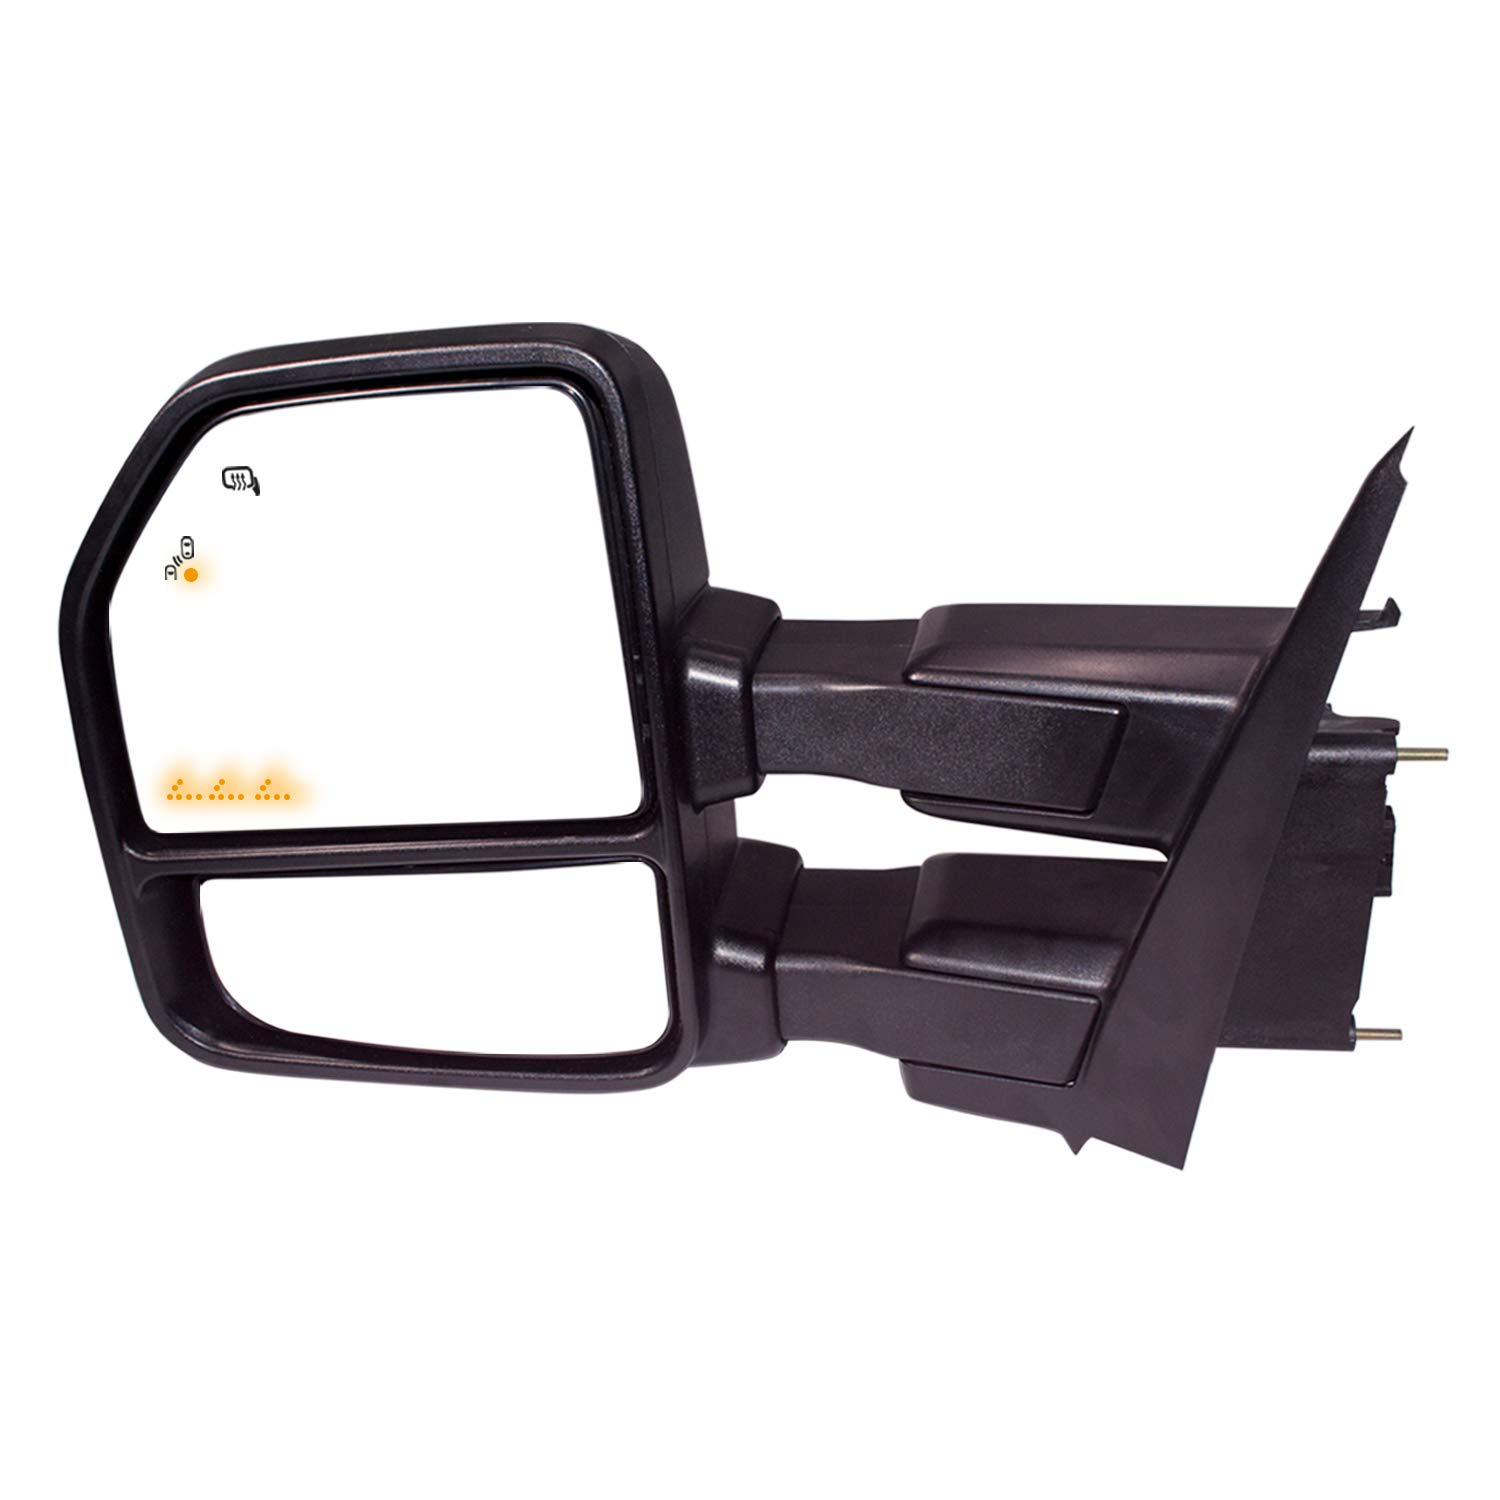 AERDM F150 Towing Mirrors fit 2015-2018 with Auxiliary//Puddle Lights Signal Indicator and Linear arrow light Power Operation Heated Black Housing with 22pin to 8pin adapter